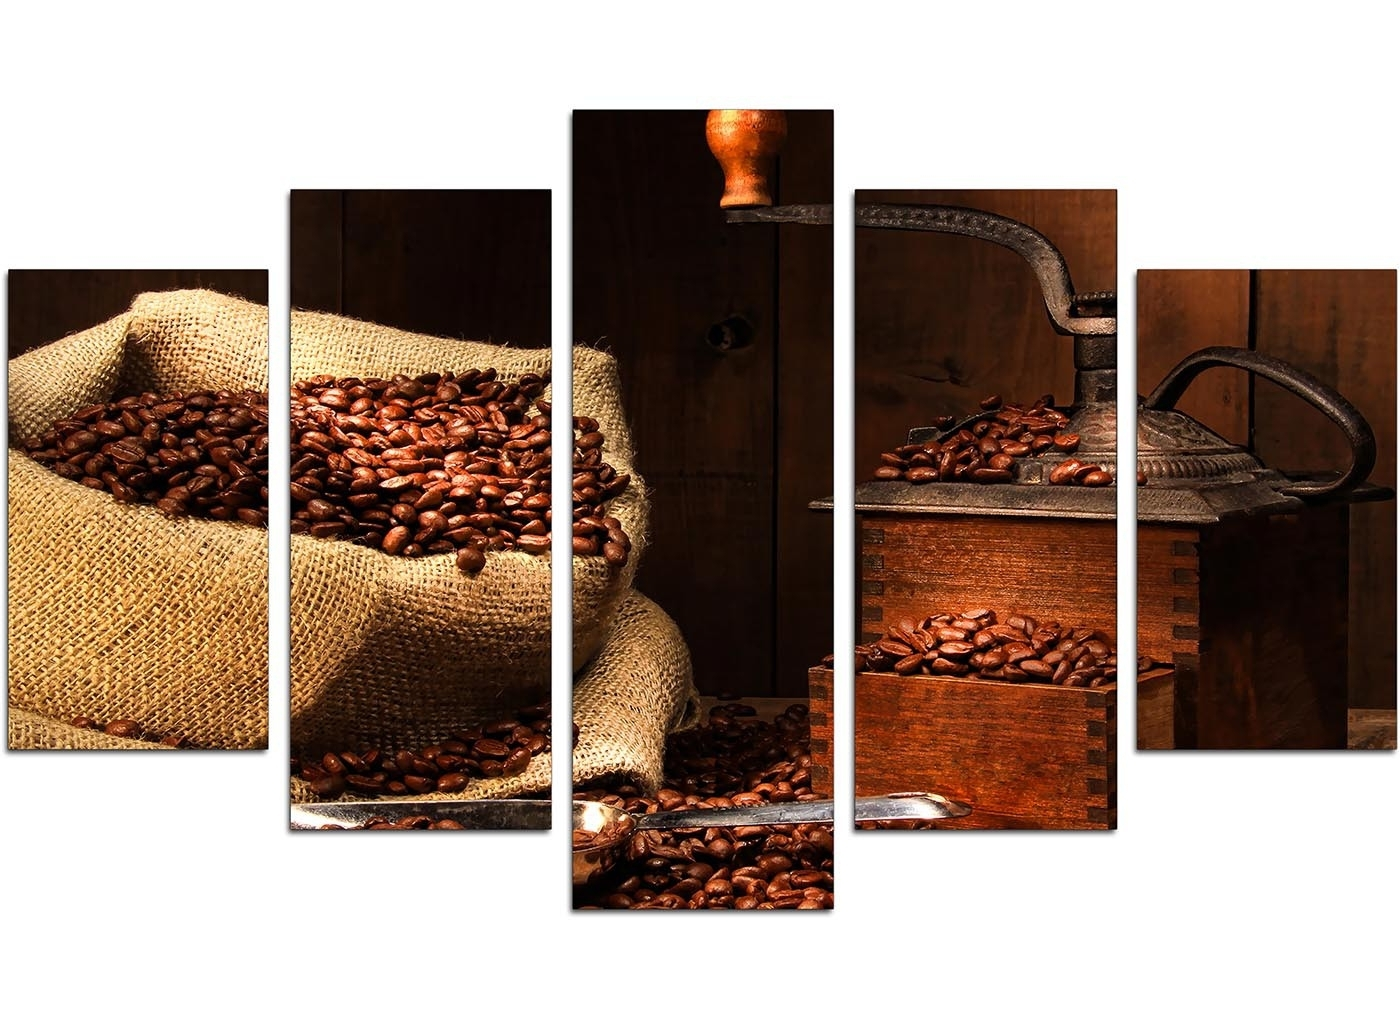 Extra Large Coffee Beans Canvas Wall Art 5 Piece In Brown Throughout Newest Kitchen Canvas Wall Art (View 3 of 15)